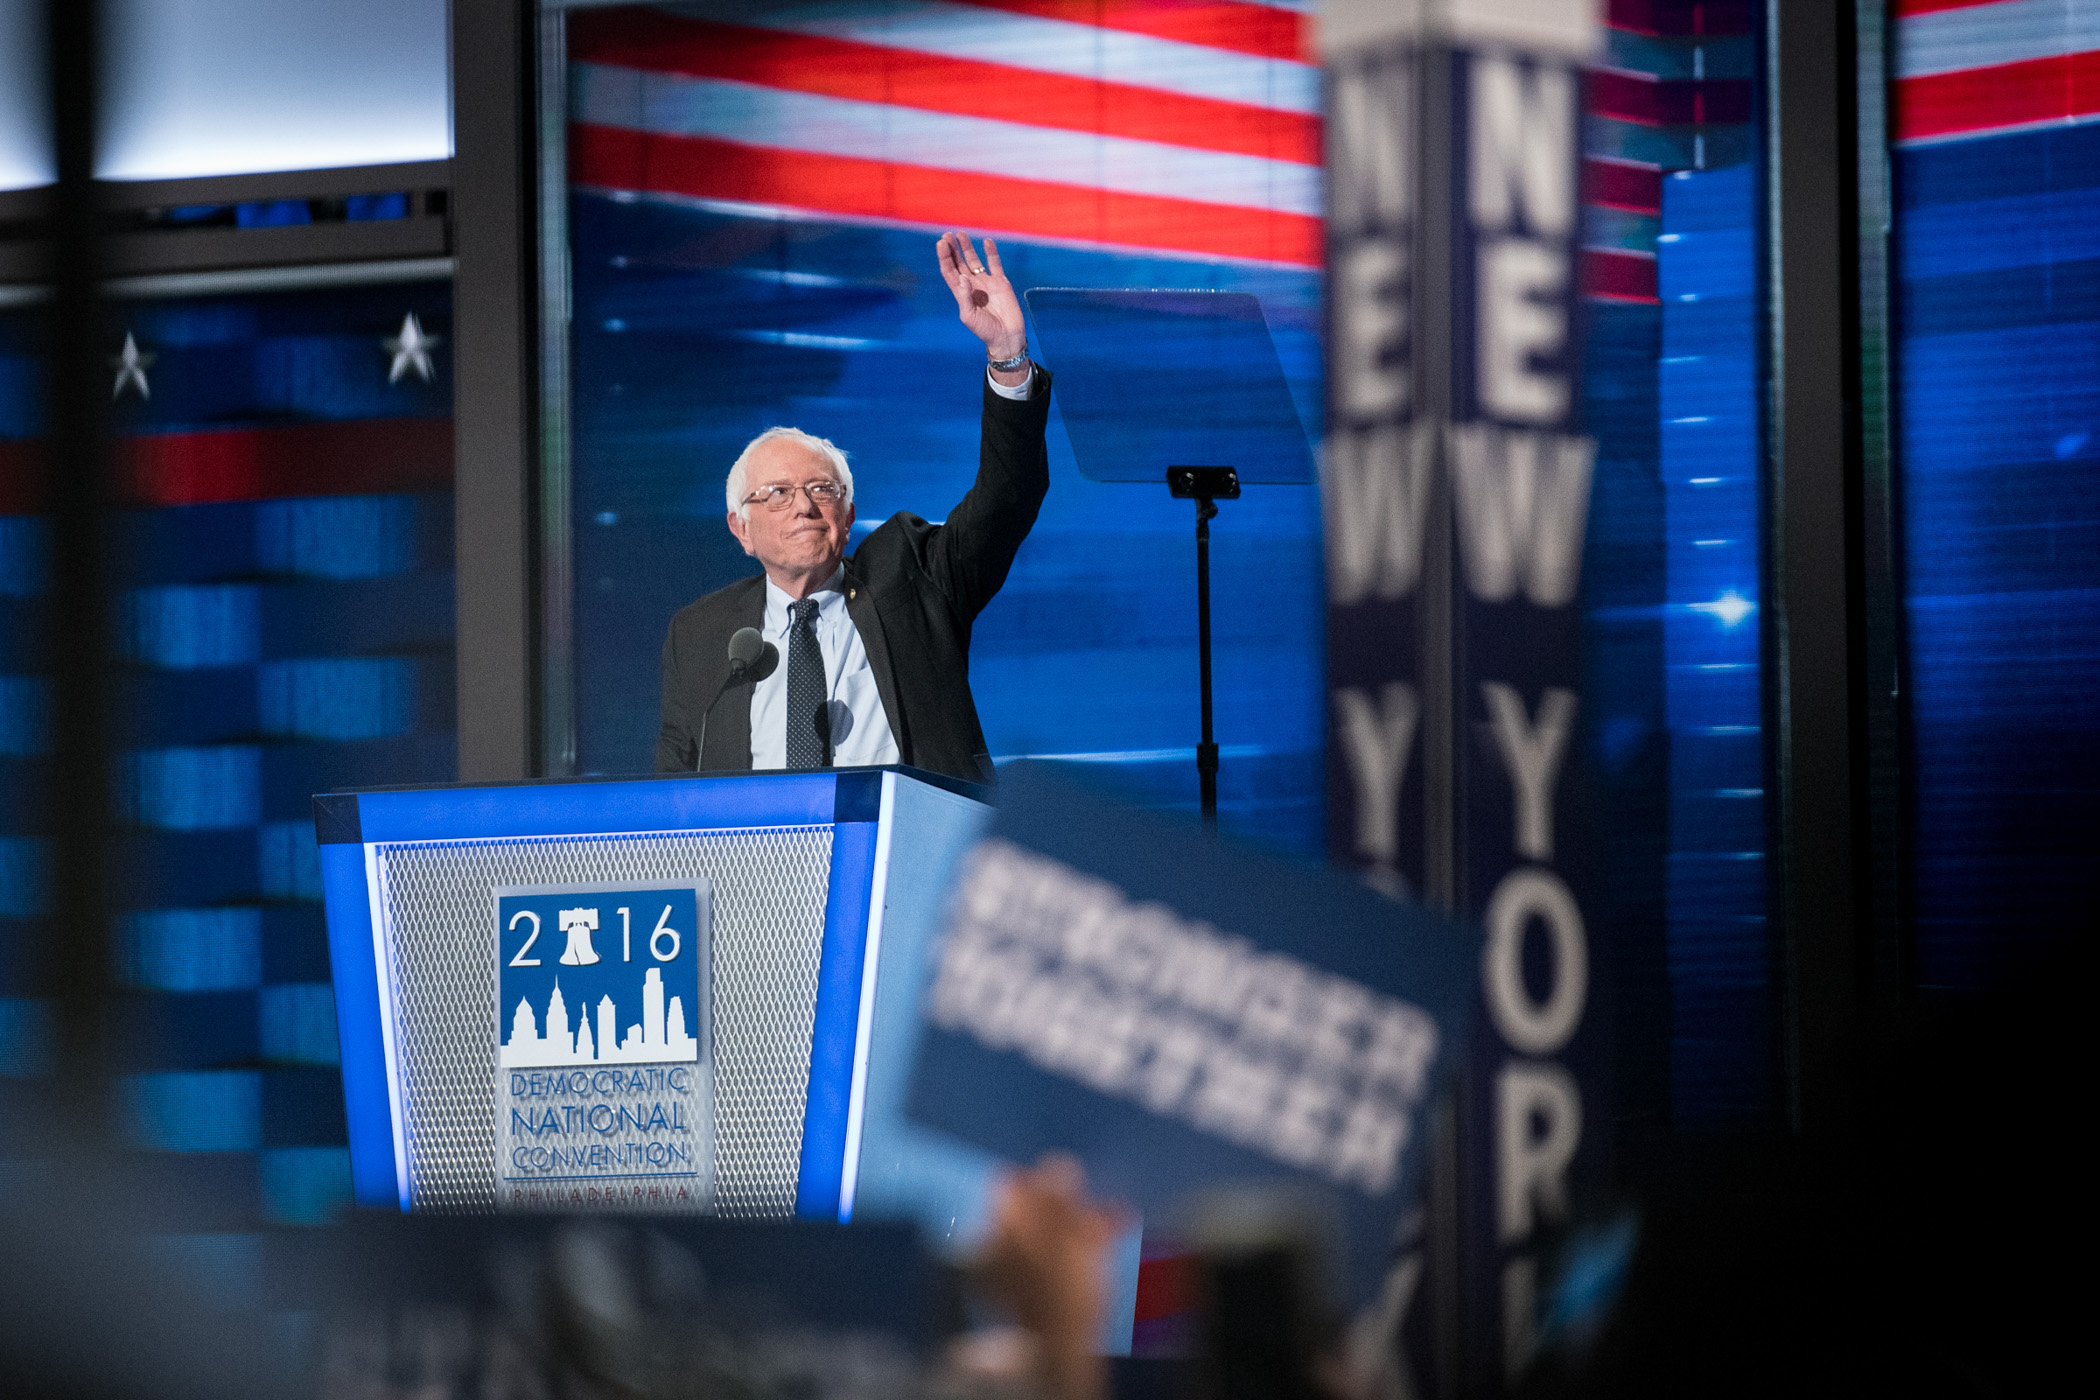 Senator Bernie Sanders, D-VT, addresses the delegates at the Democratic National Convention inside the Wells Fargo Center in Philadelphia on Monday July 25, 2016. (Michael Ares / Philadelphia Inquirer)